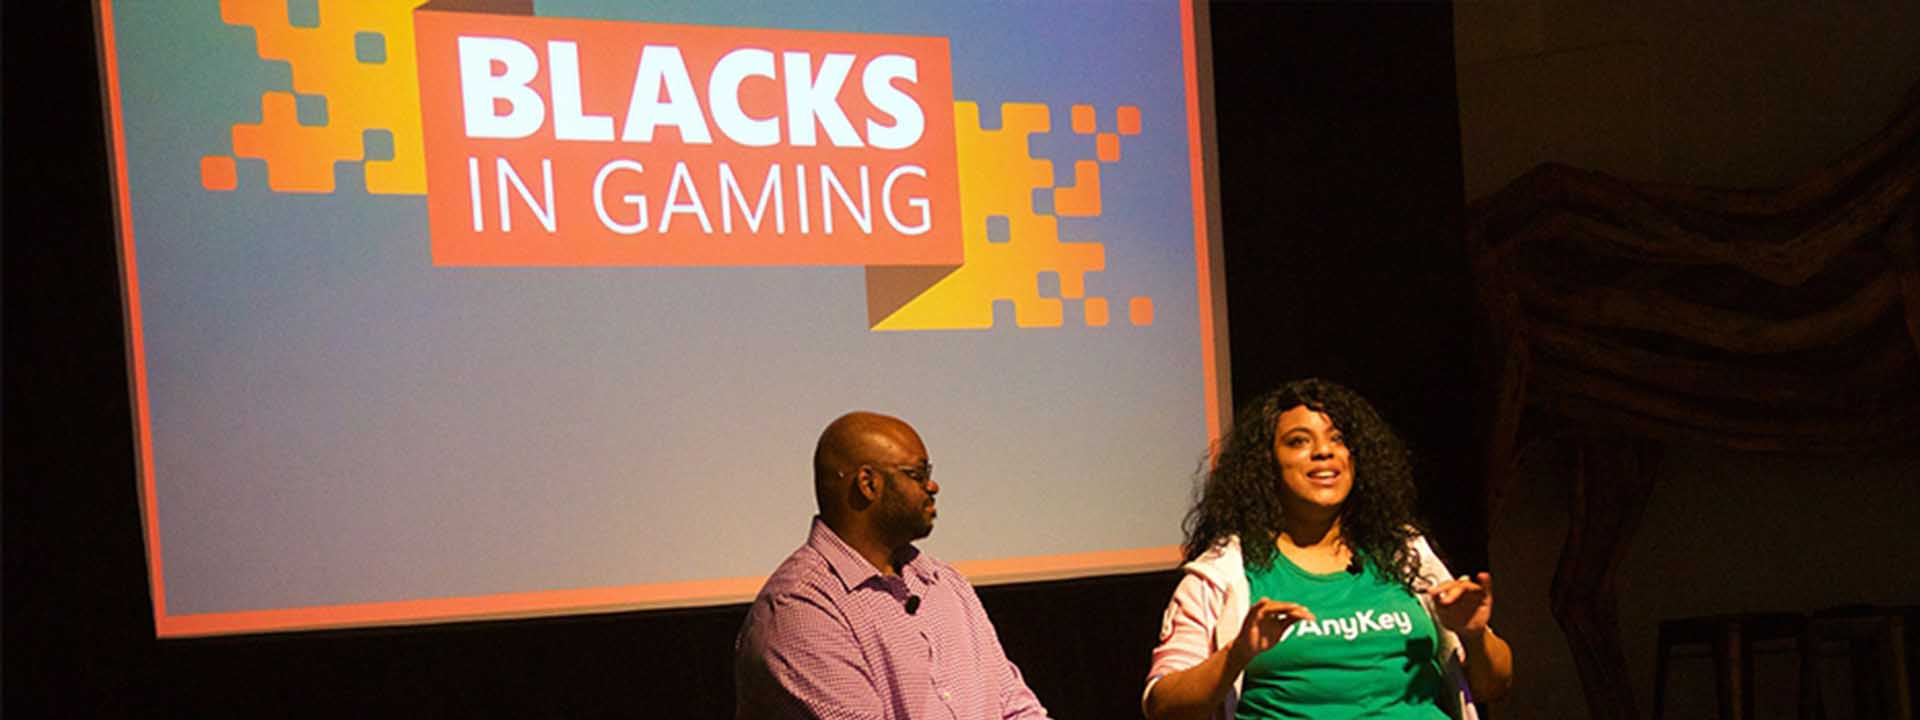 two gaming industry professionals from the black community talk on a stage